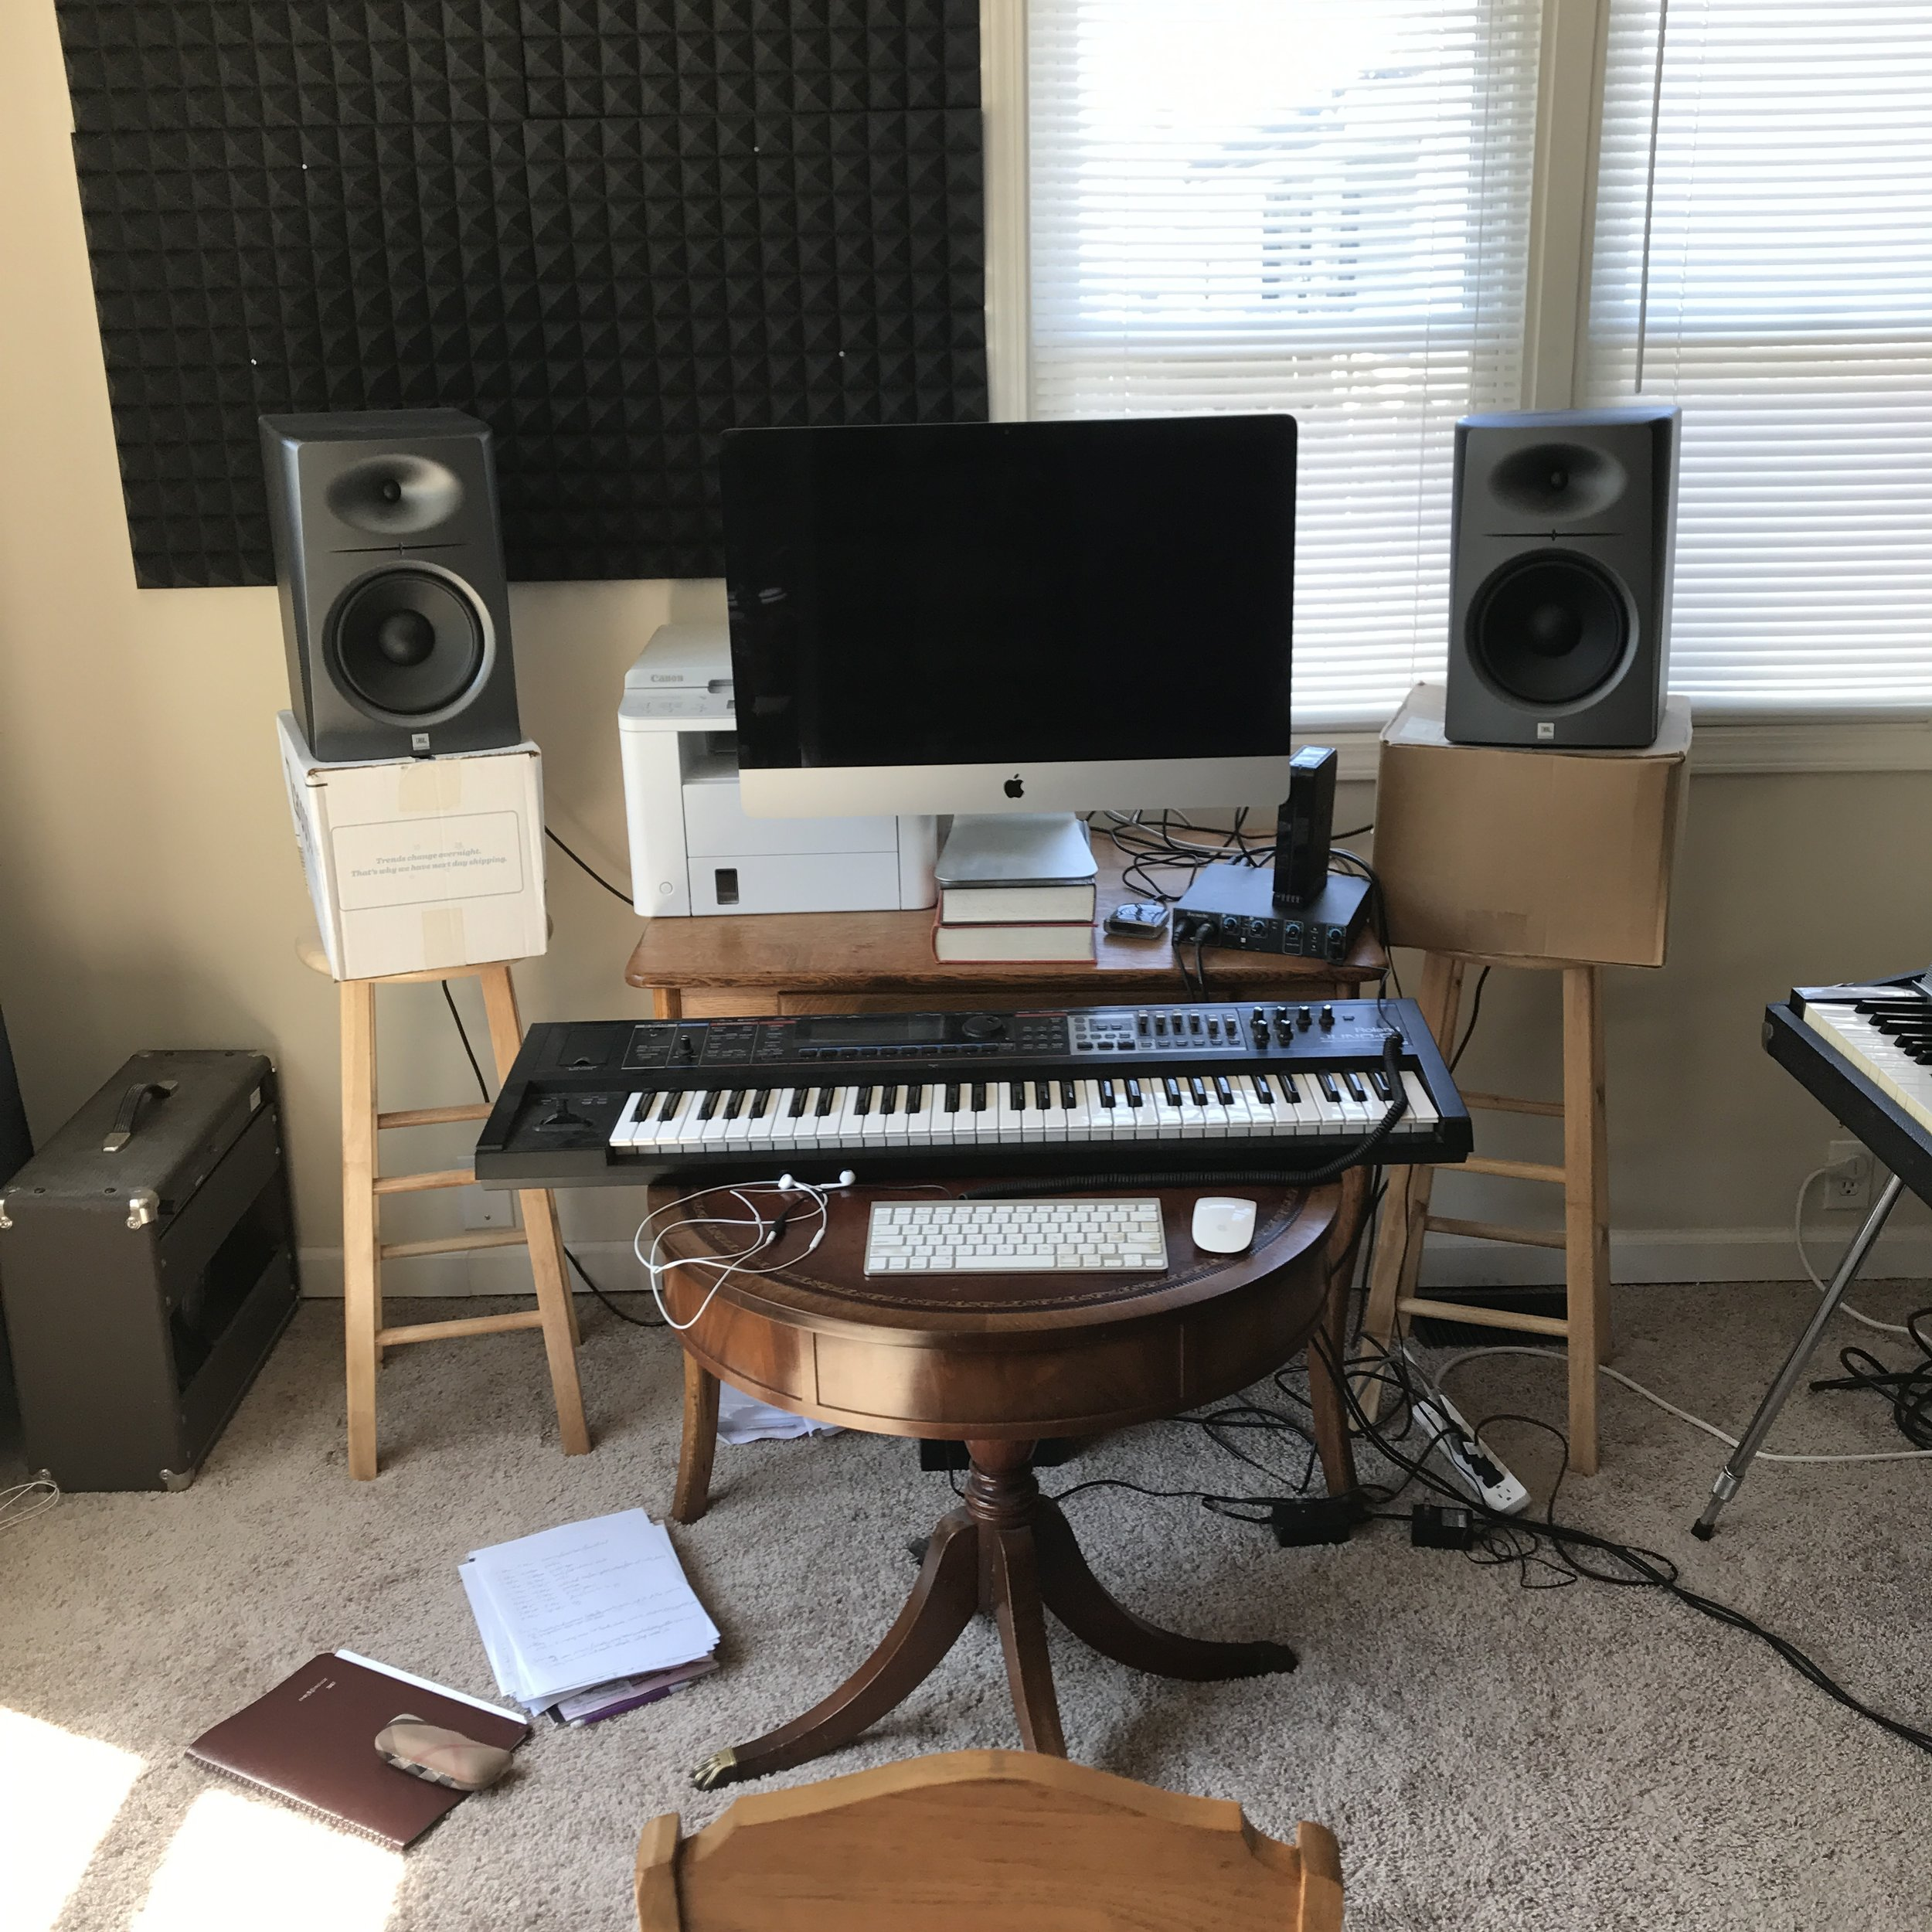 computer workspace at home, where dreams become reality